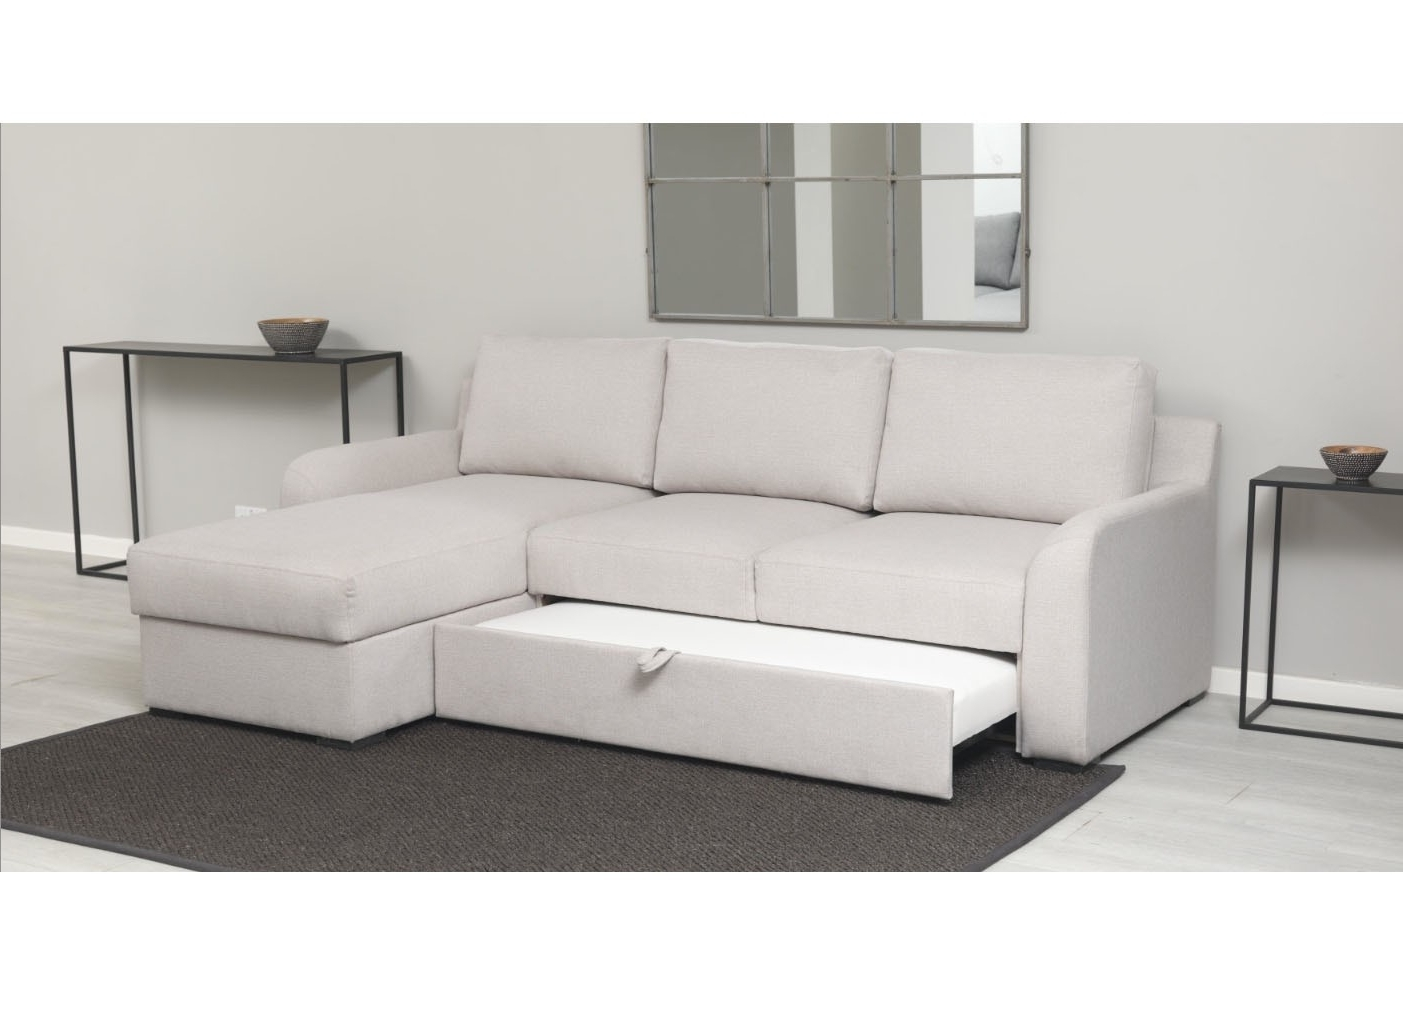 Preferred Corner Sofa Bed With Storage – Mforum Regarding Sofa Beds With Chaise (View 11 of 15)